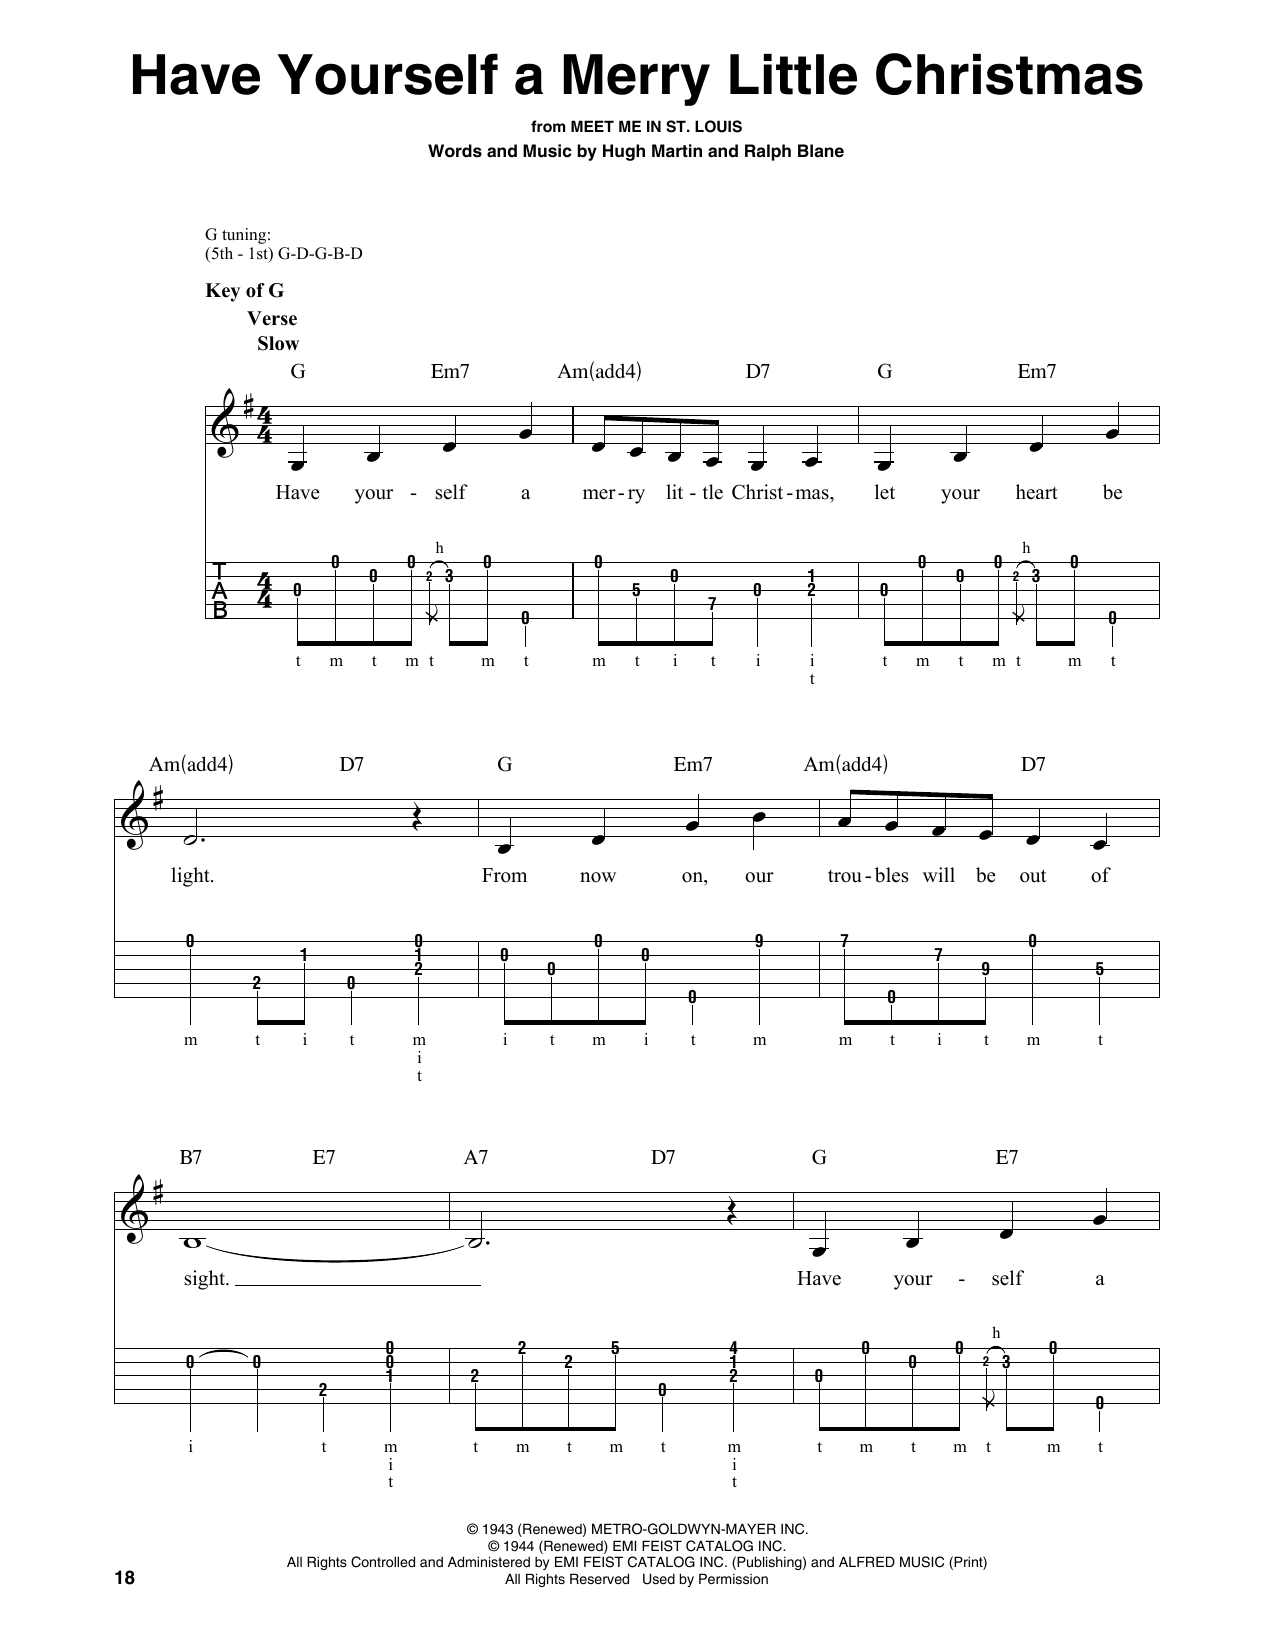 Have Yourself A Merry Little Christmas Sheet Music Pdf.Have Yourself A Merry Little Christmas At Stanton S Sheet Music